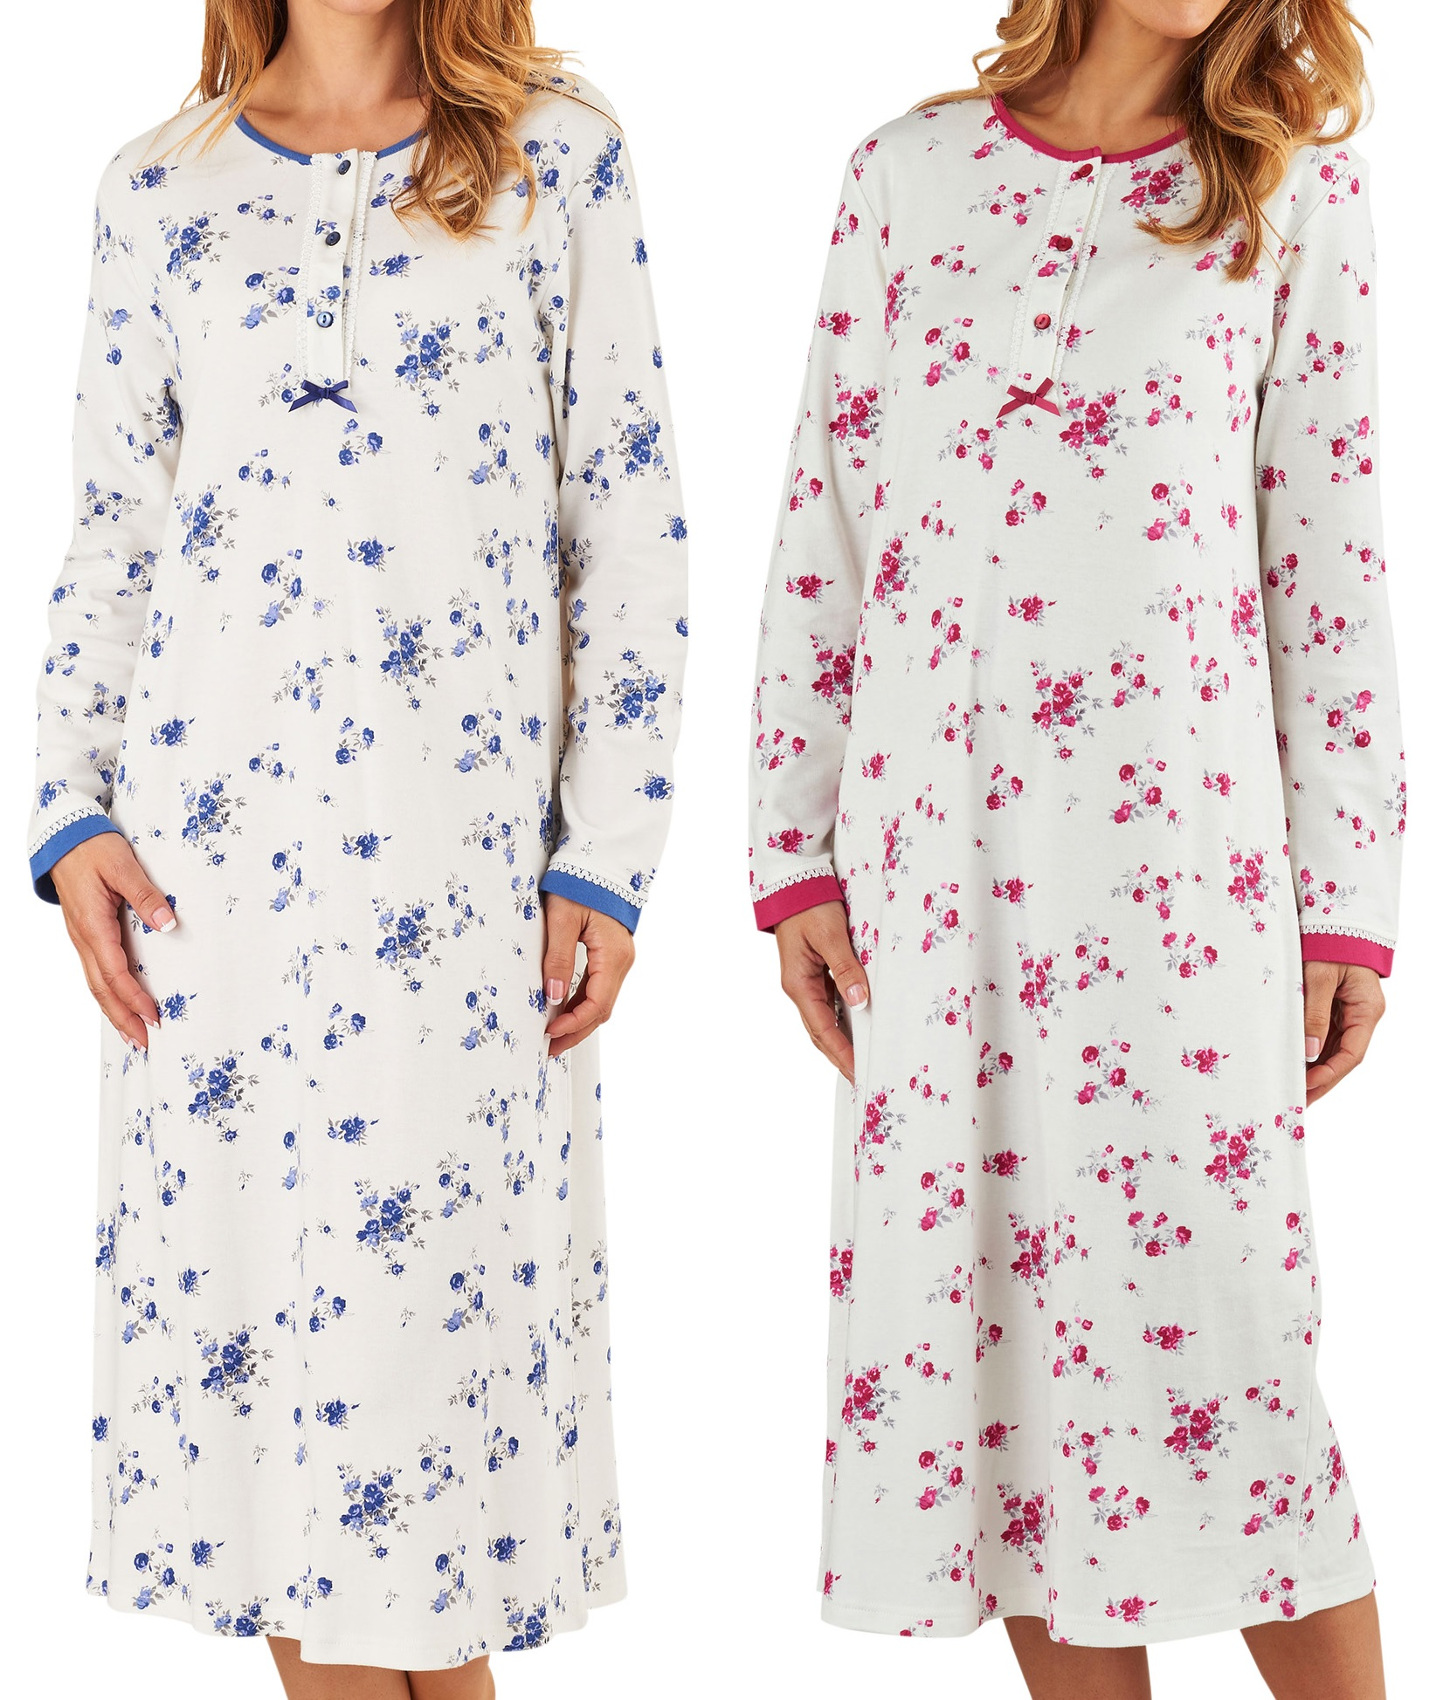 Nightdress Womens Long Sleeved Floral 100% Jersey Cotton Nightie Slenderella fc66895ed